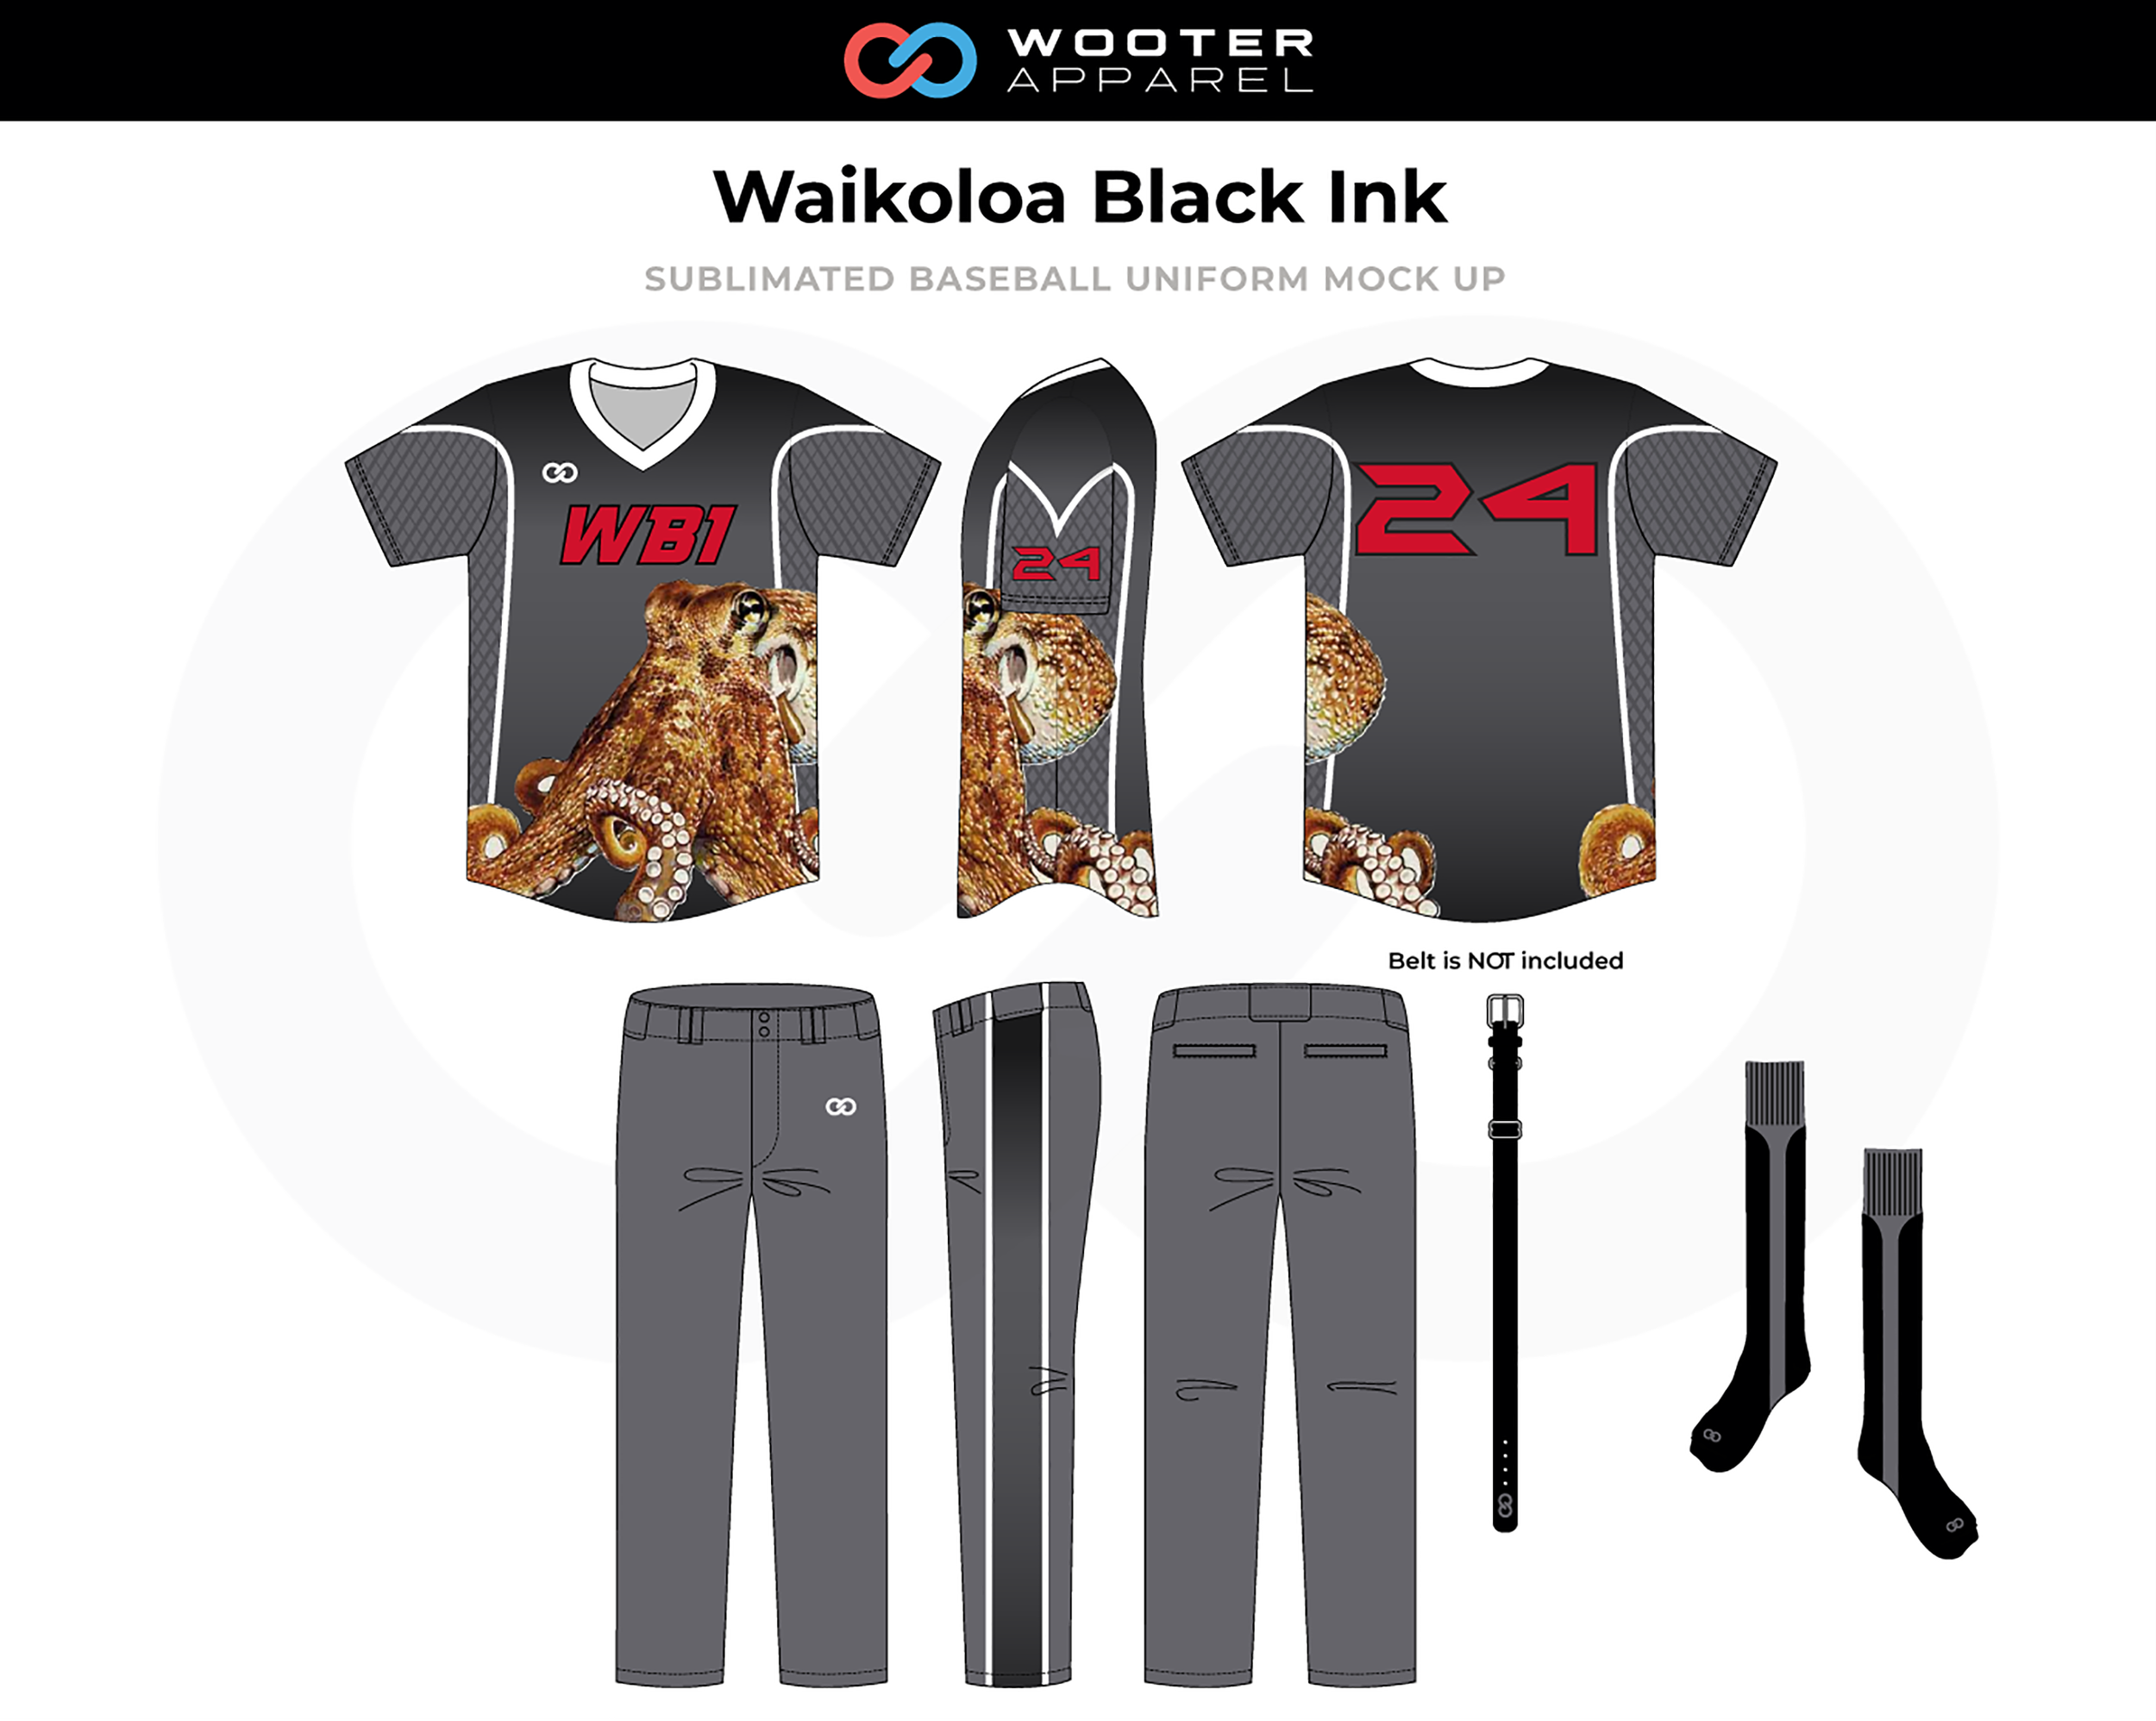 Waikoloa-Black-Ink-Sublimated-Baseball-Uniform.png